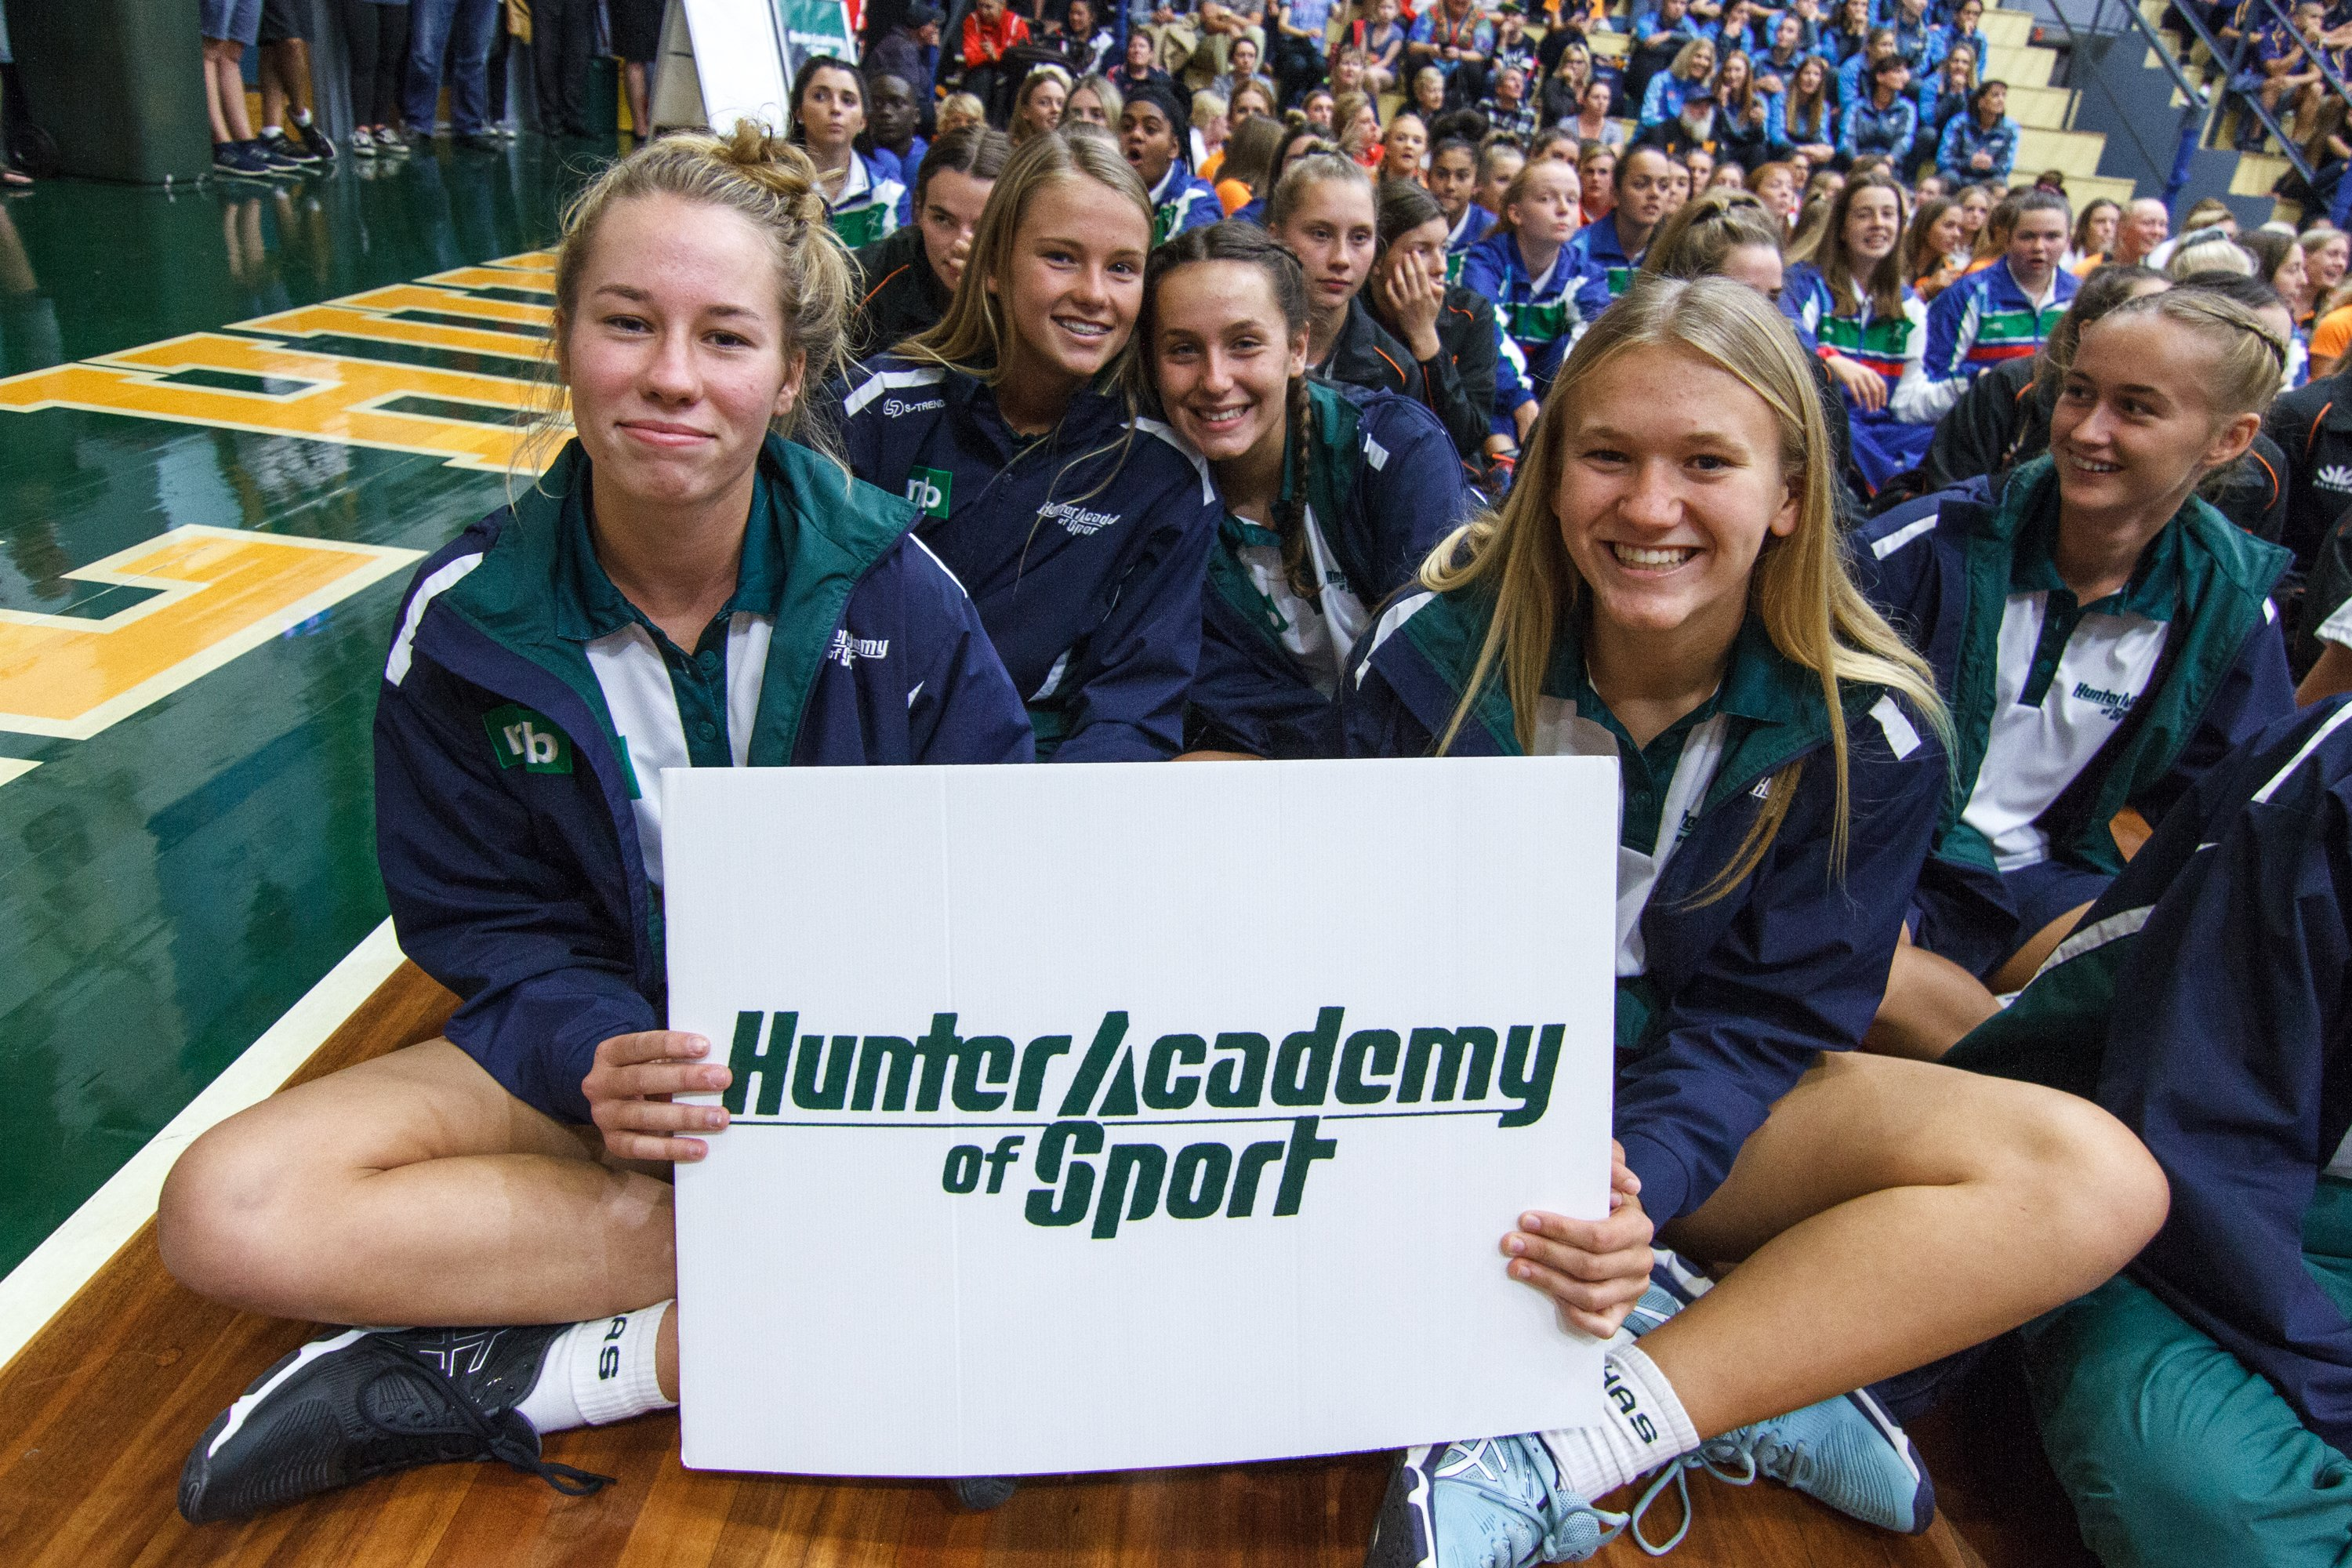 The Hunter Academy of Sport had an impressive weekend of sport over the 27th-29th April, check out their results here!